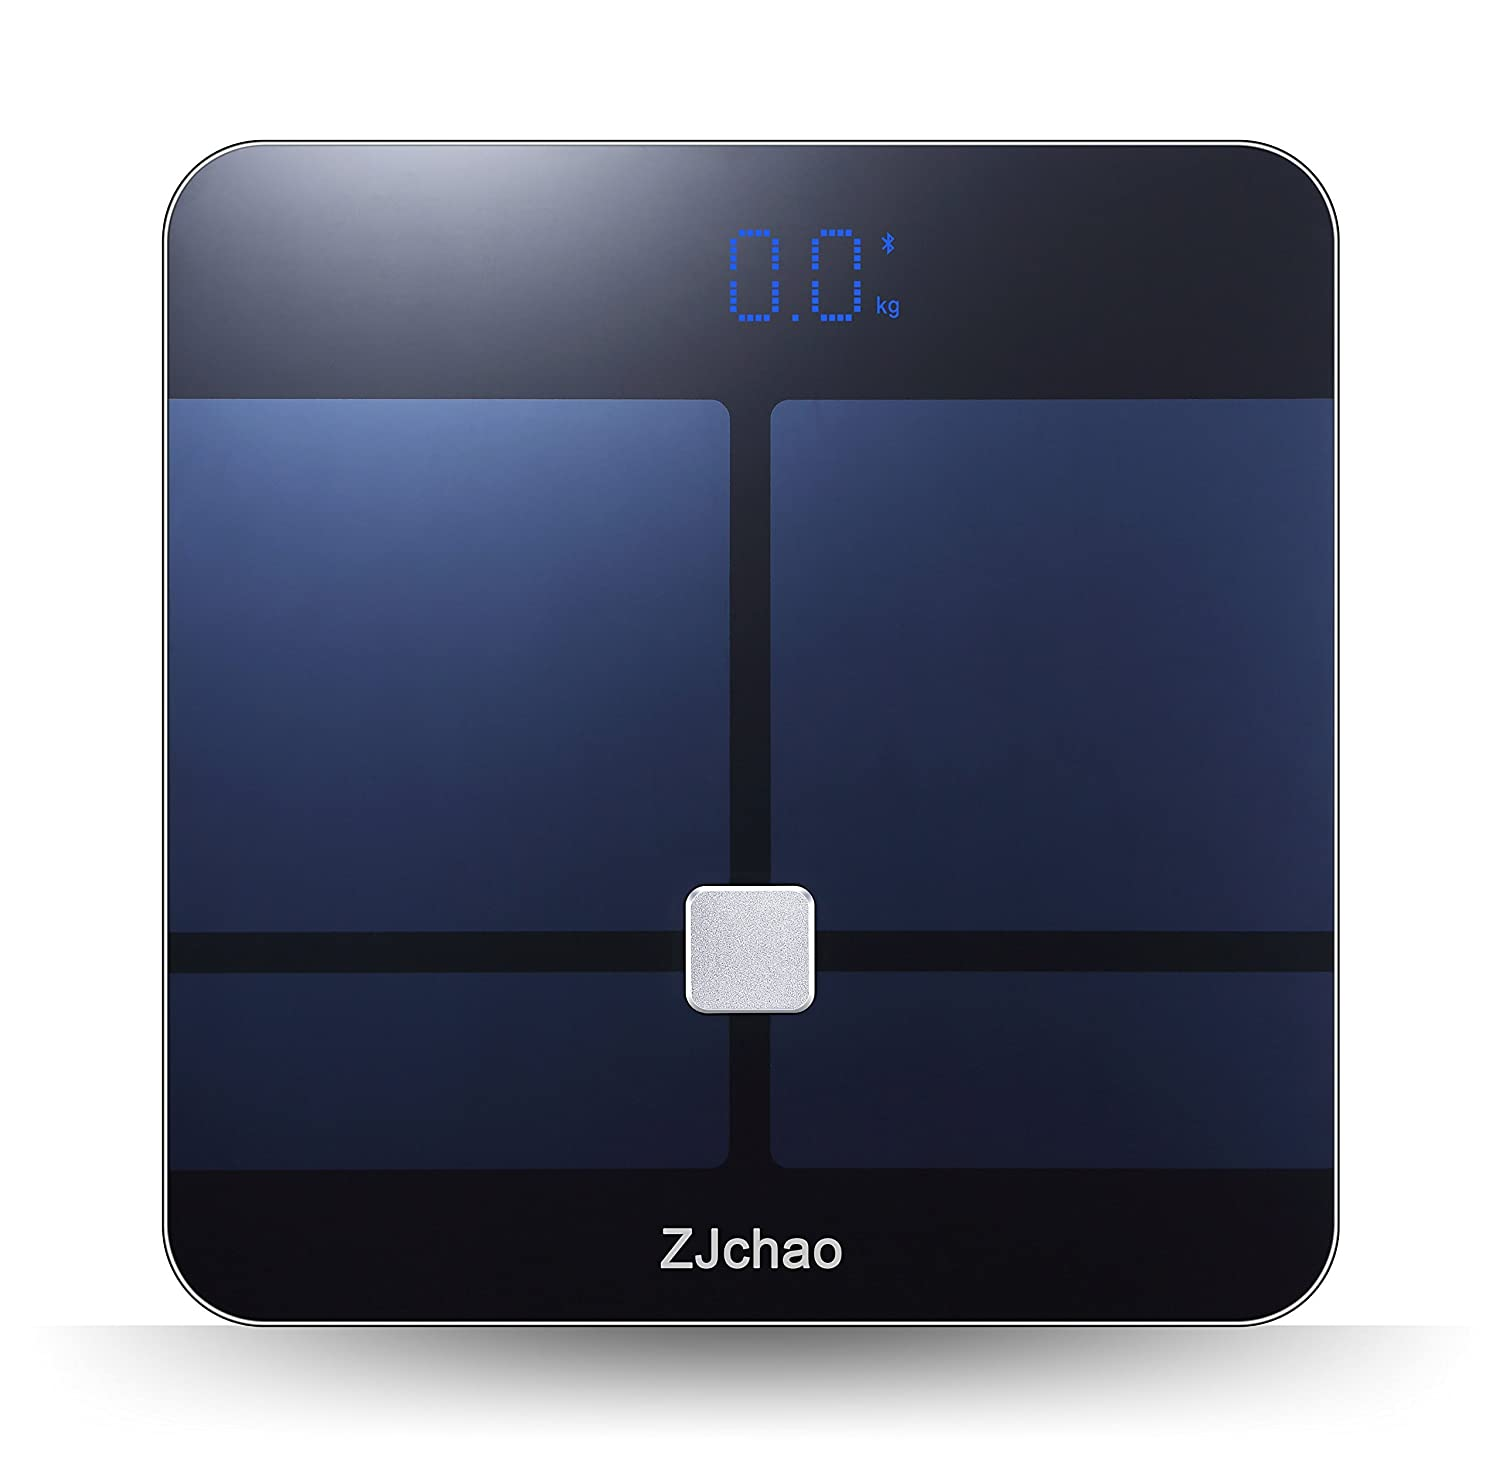 Amazon scale bathroom - Amazon Scale Bathroom 23